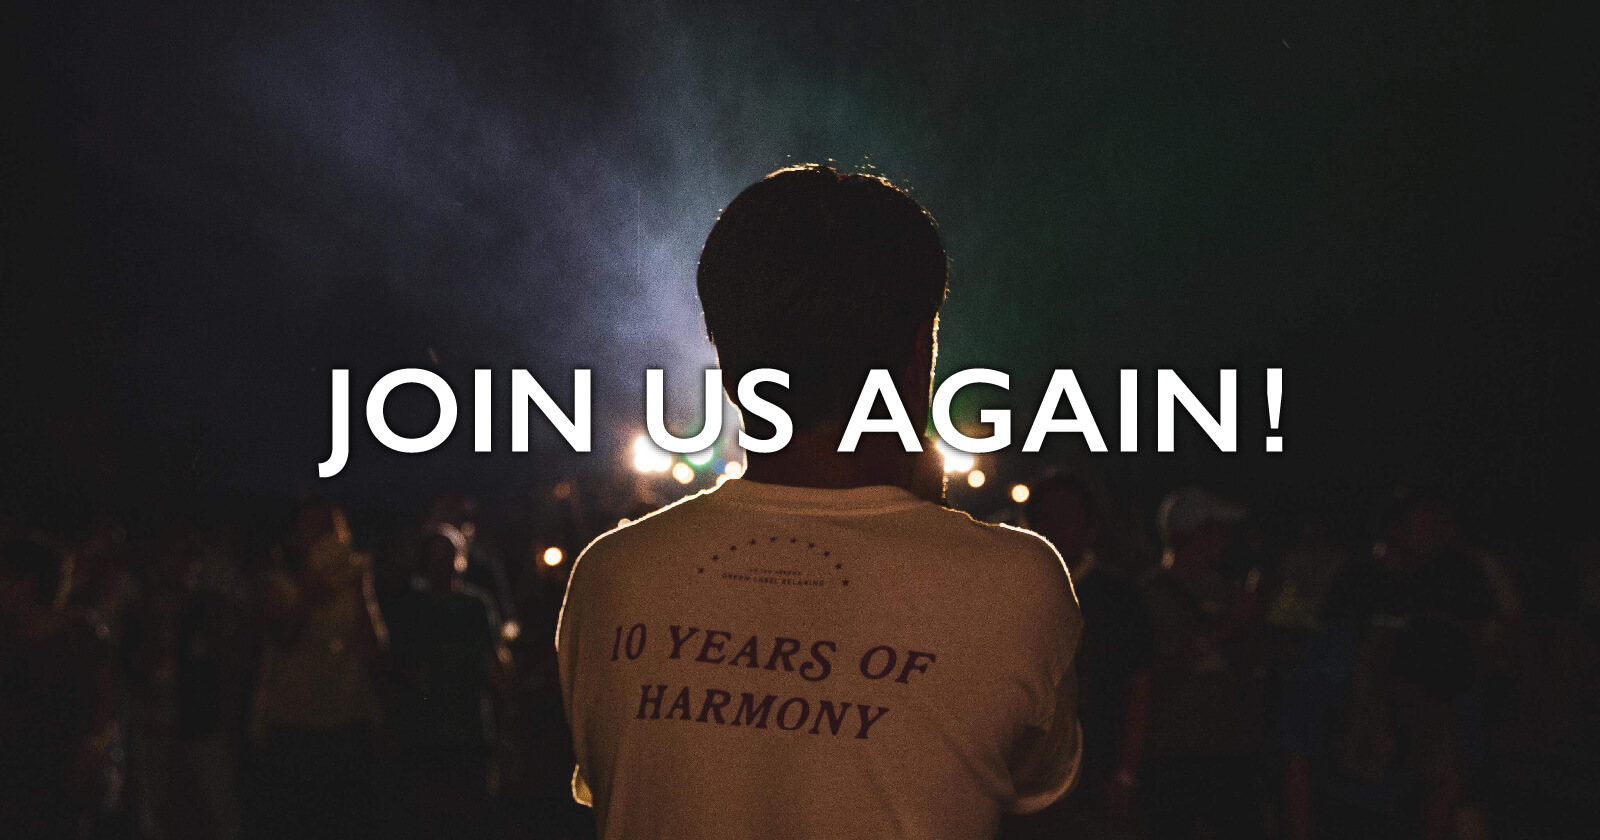 JOIN US AGAIN!